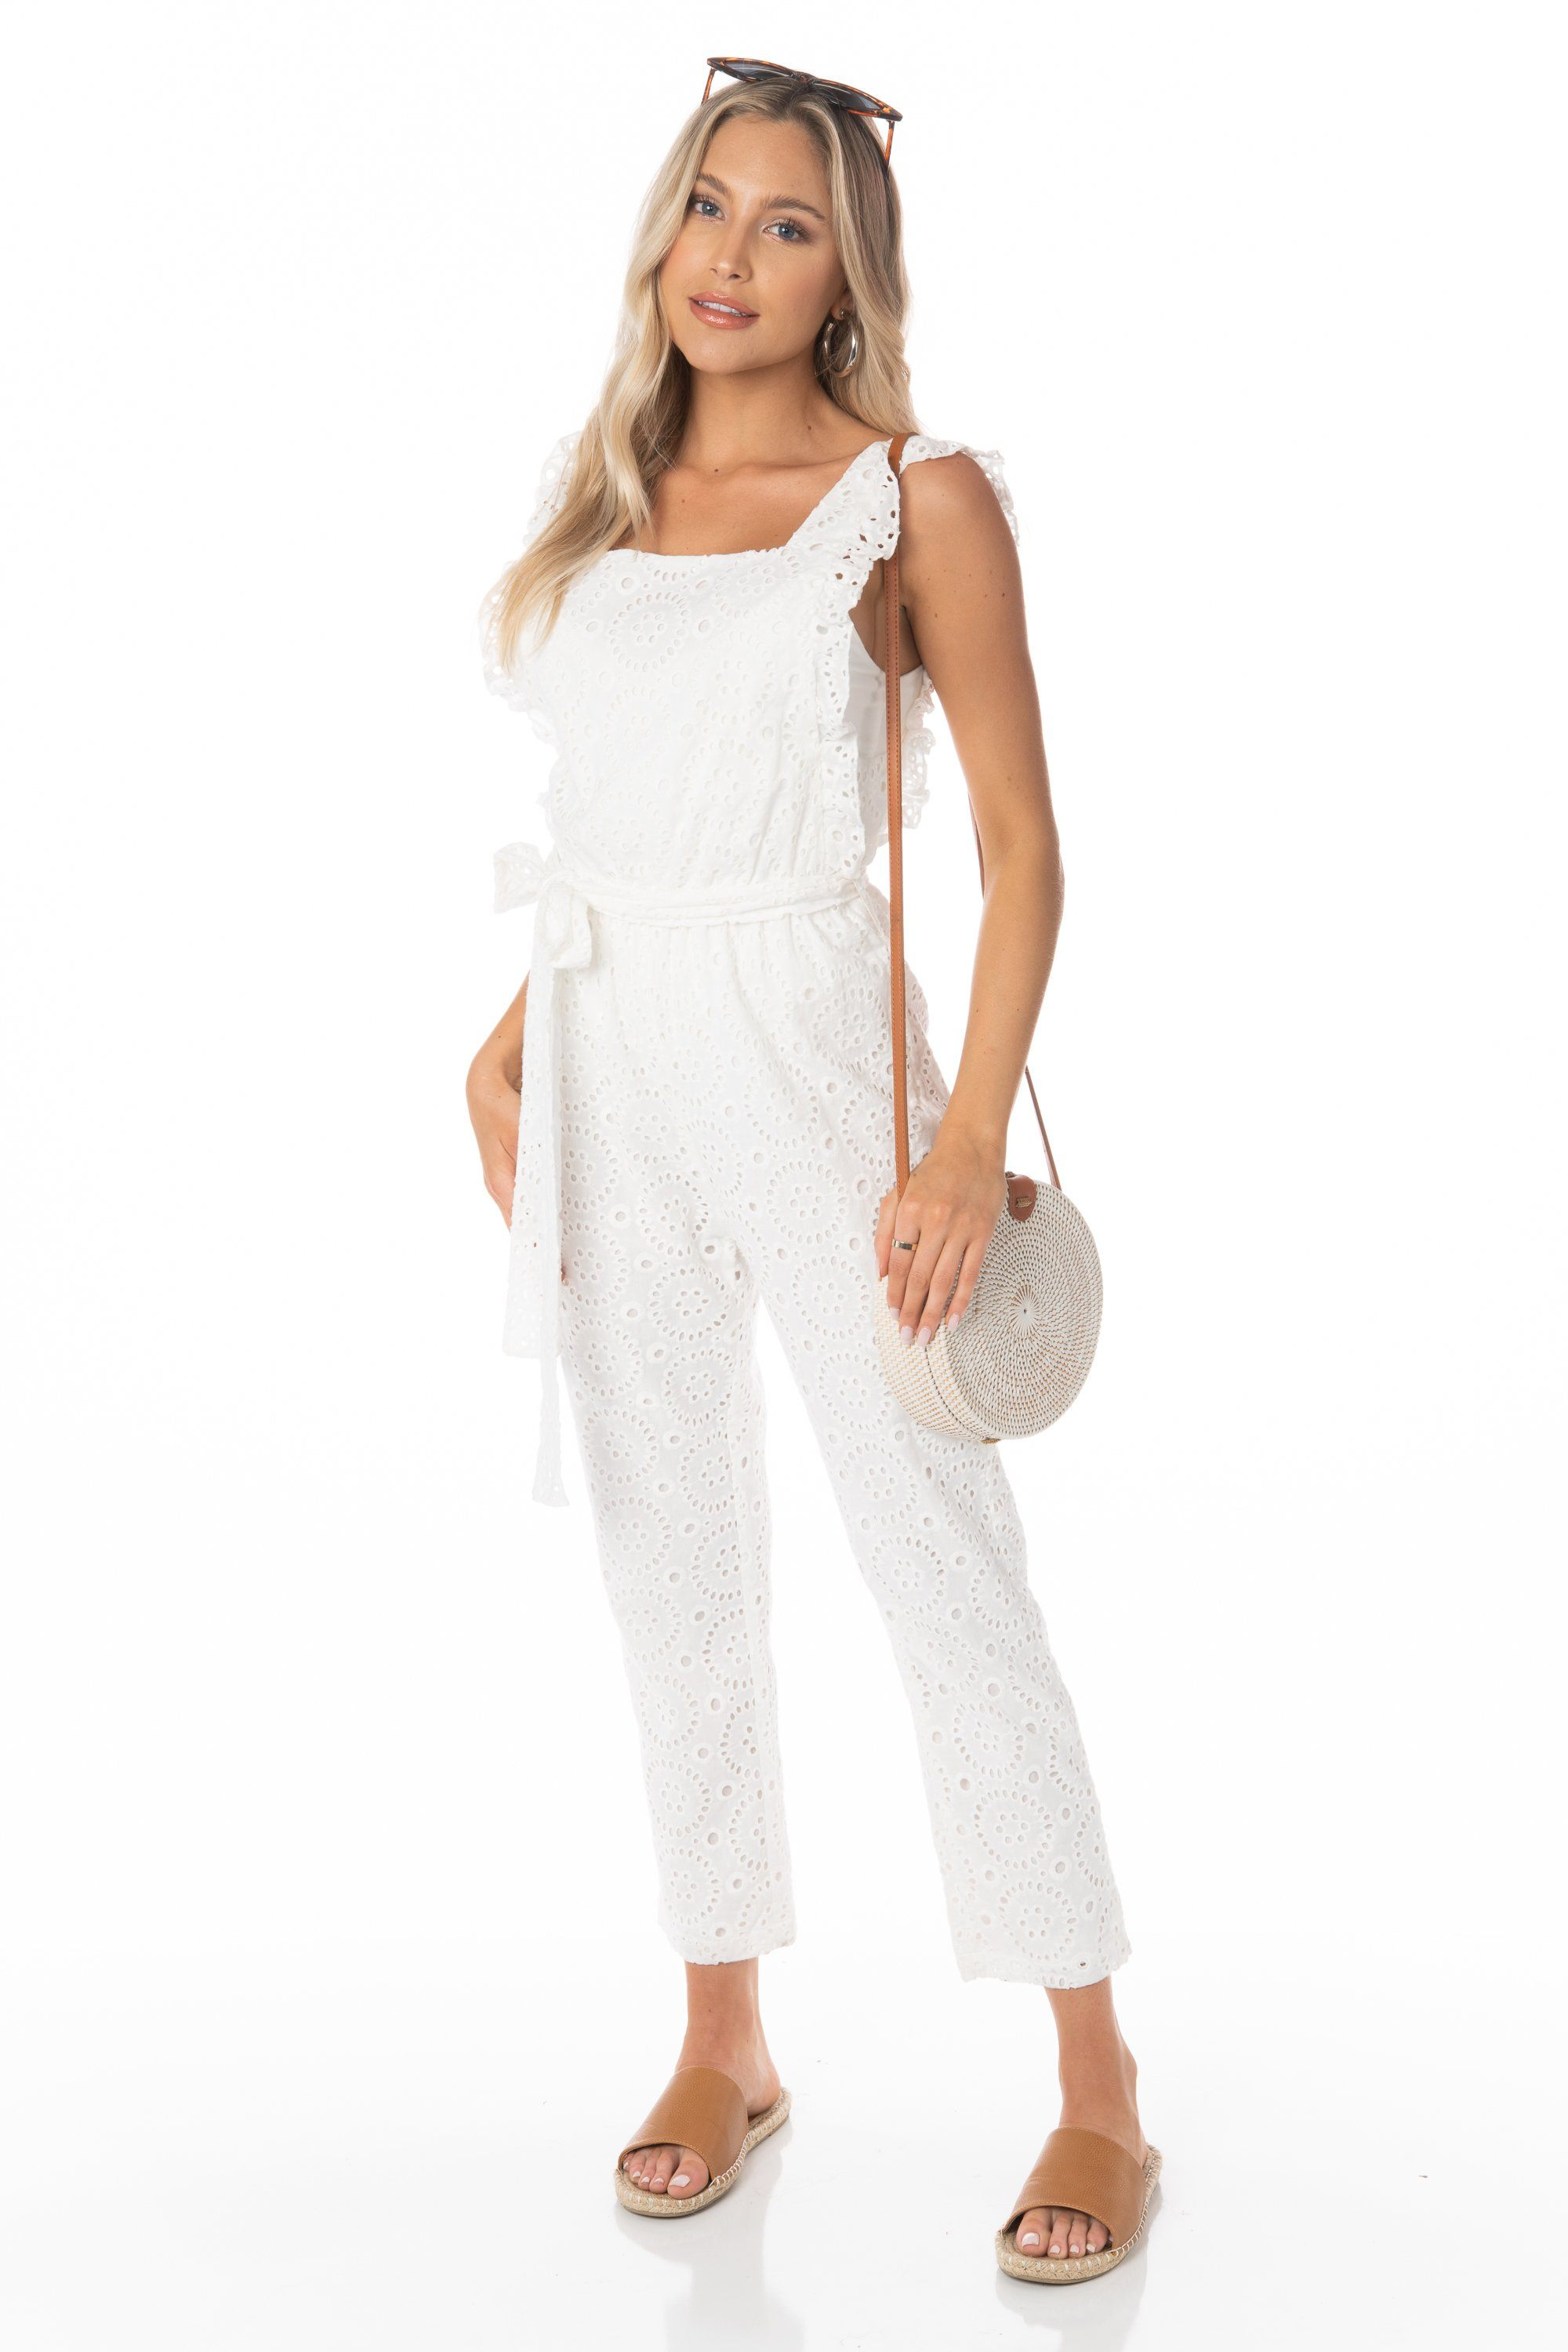 Hello Sunshine Eyelet White Jumpsuit - FINAL SALE Rompers & Jumpers HYPEACH BOUTIQUE